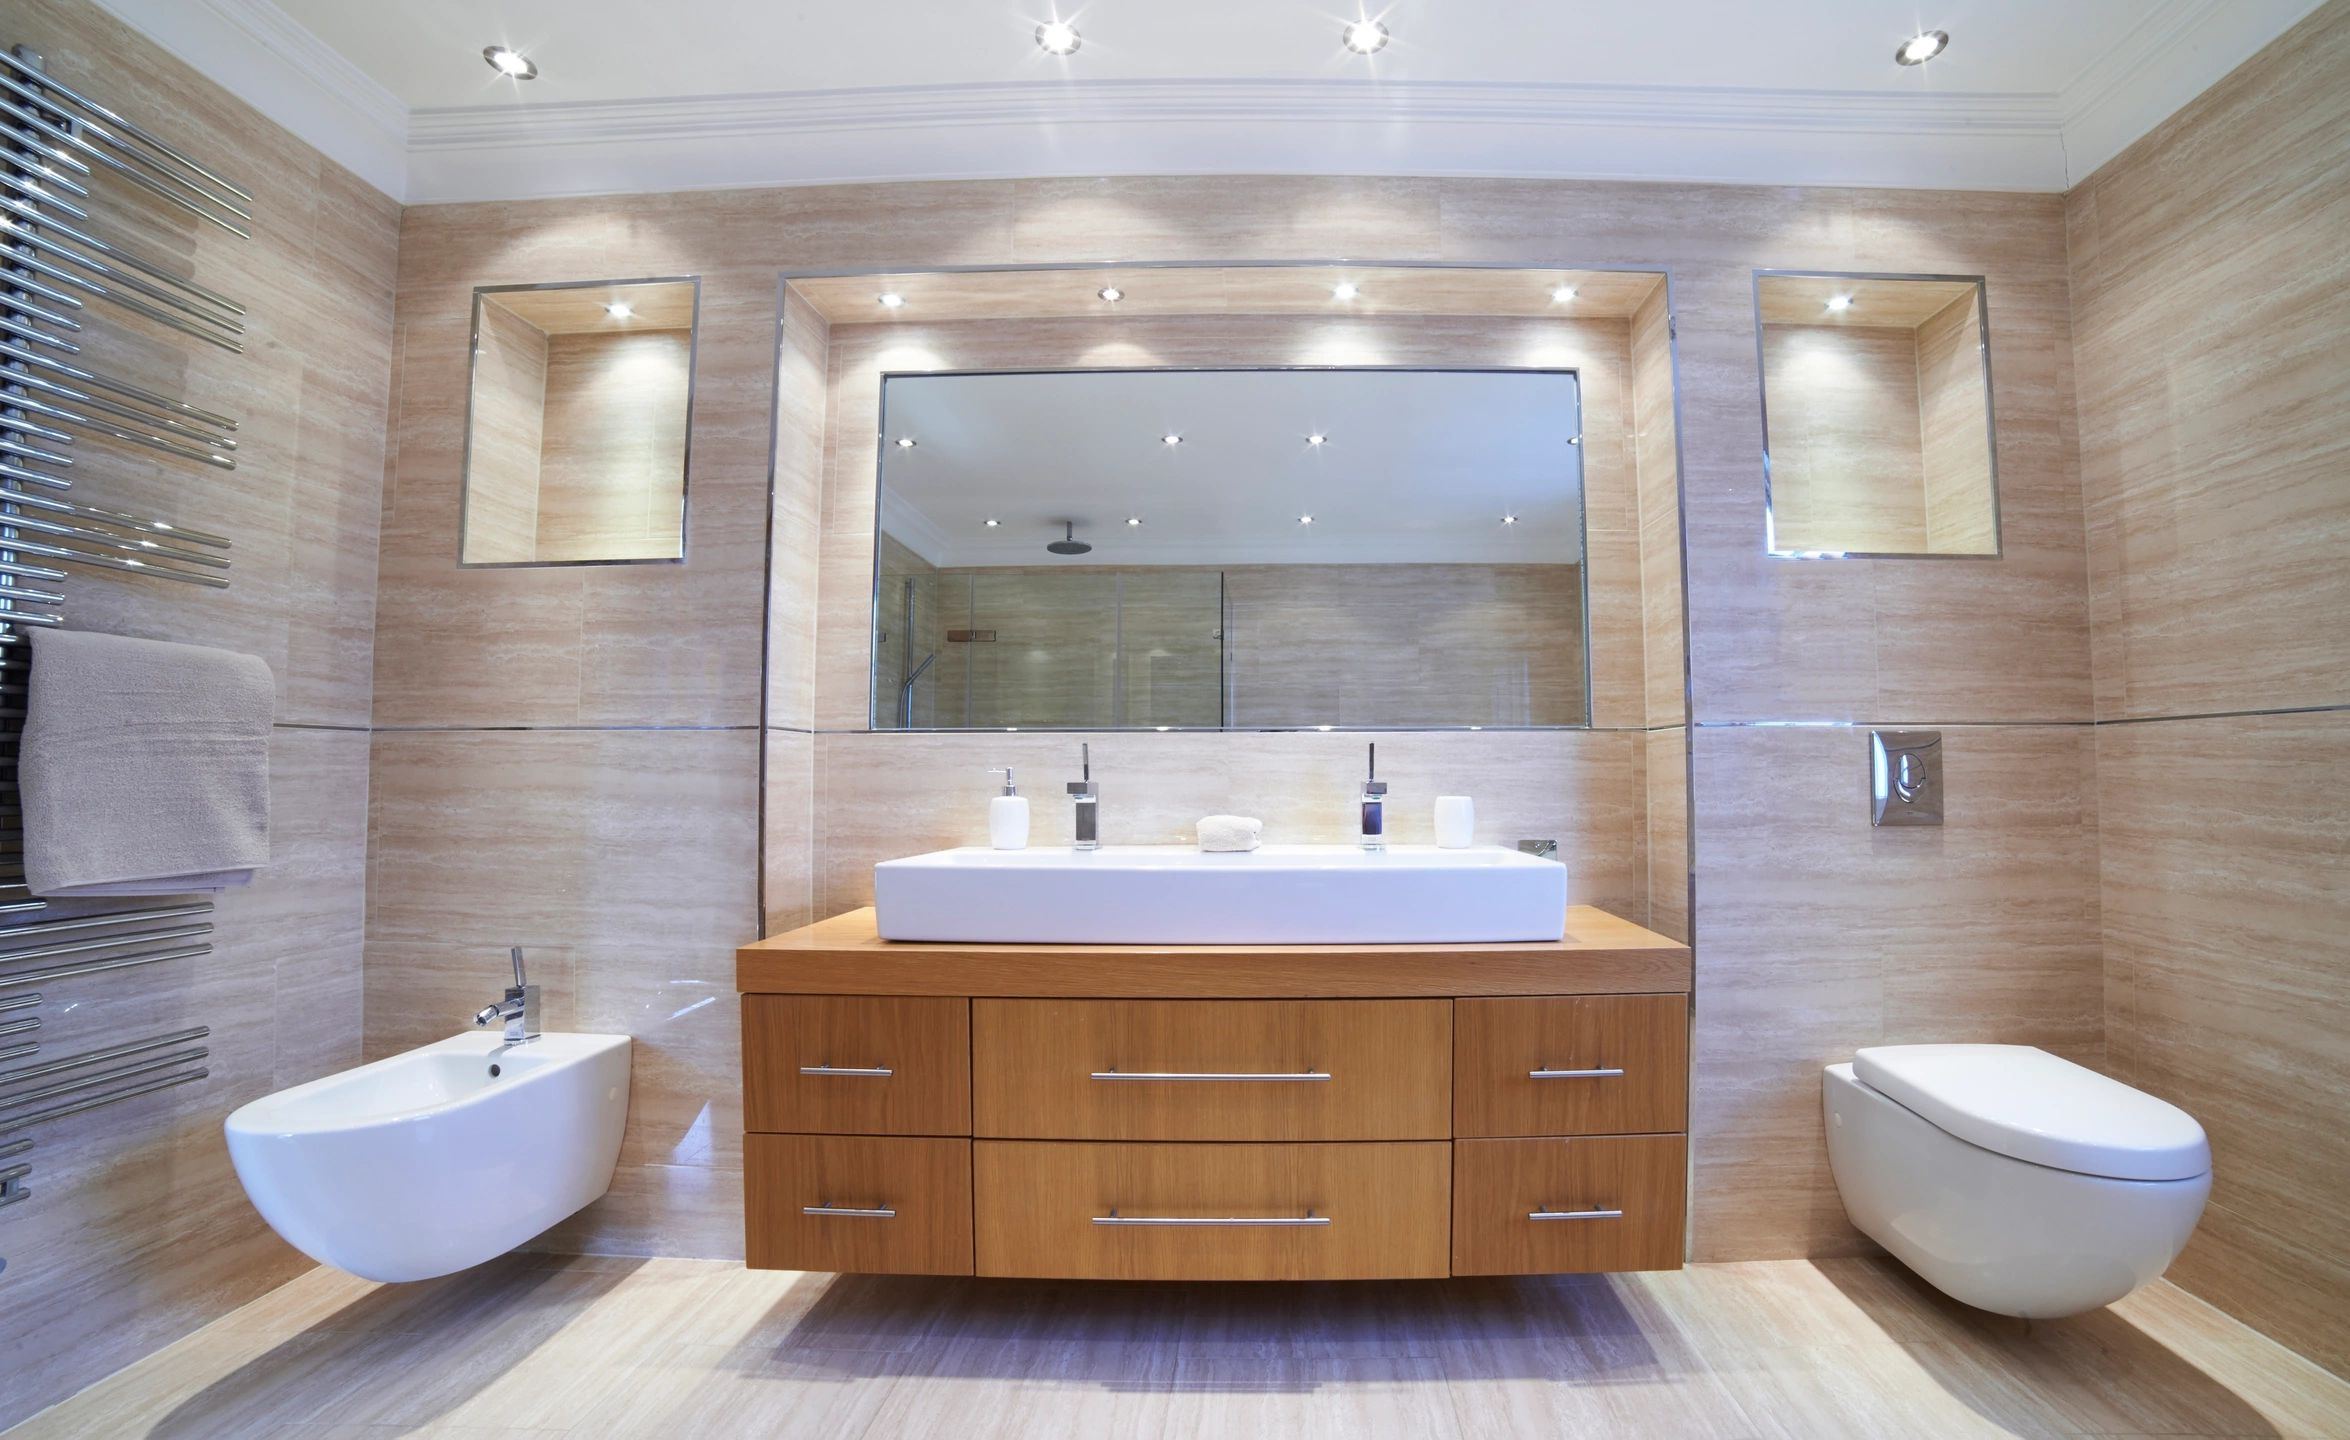 Bathroom Remodeling Xquisite Installations Inc - Bathroom remodel broward county